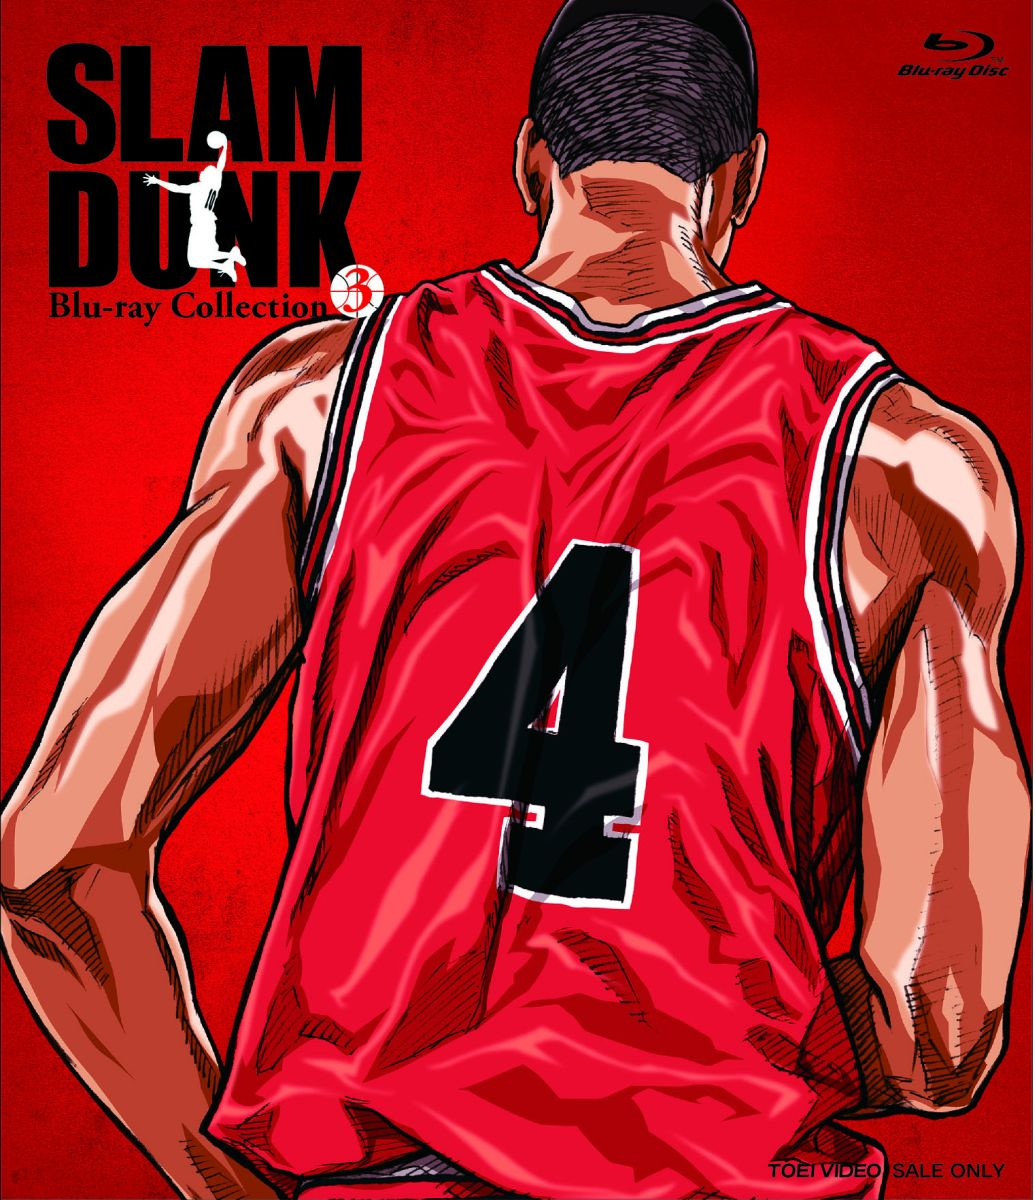 SLAM DUNK Blu-ray Collection 3【Blu-ray】画像